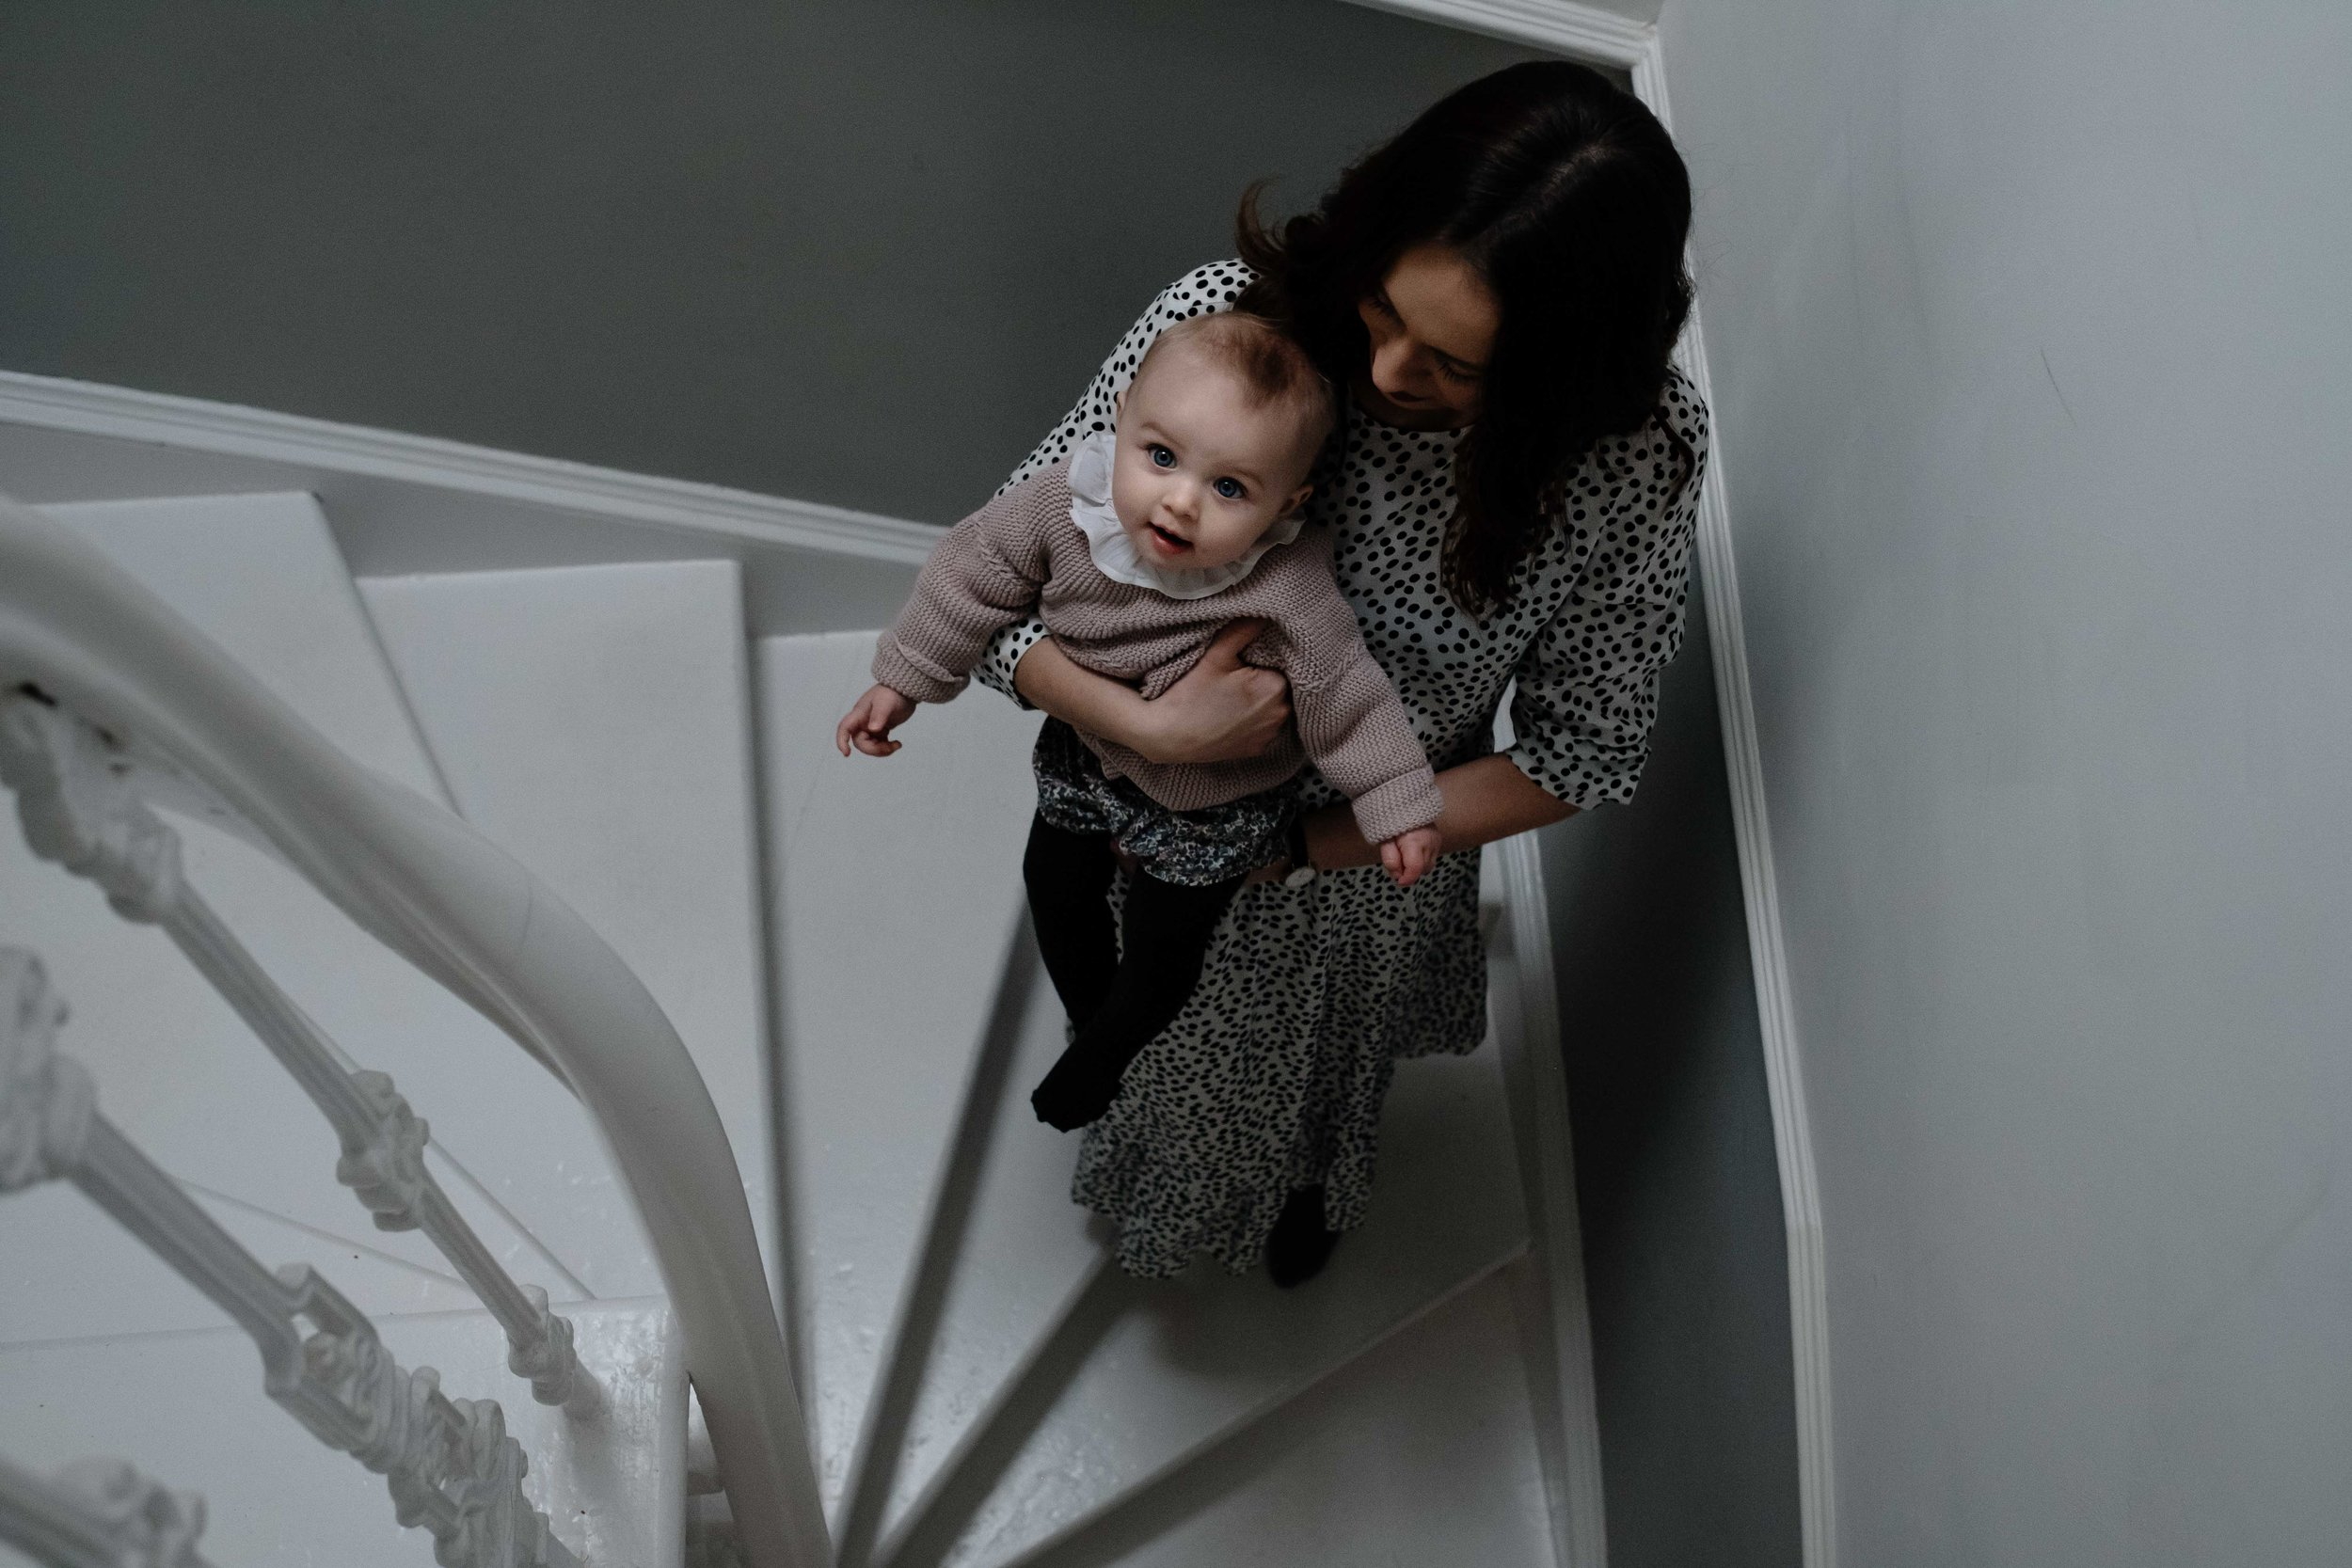 a mother is walking down the stairs of her house carrying her baby daughter